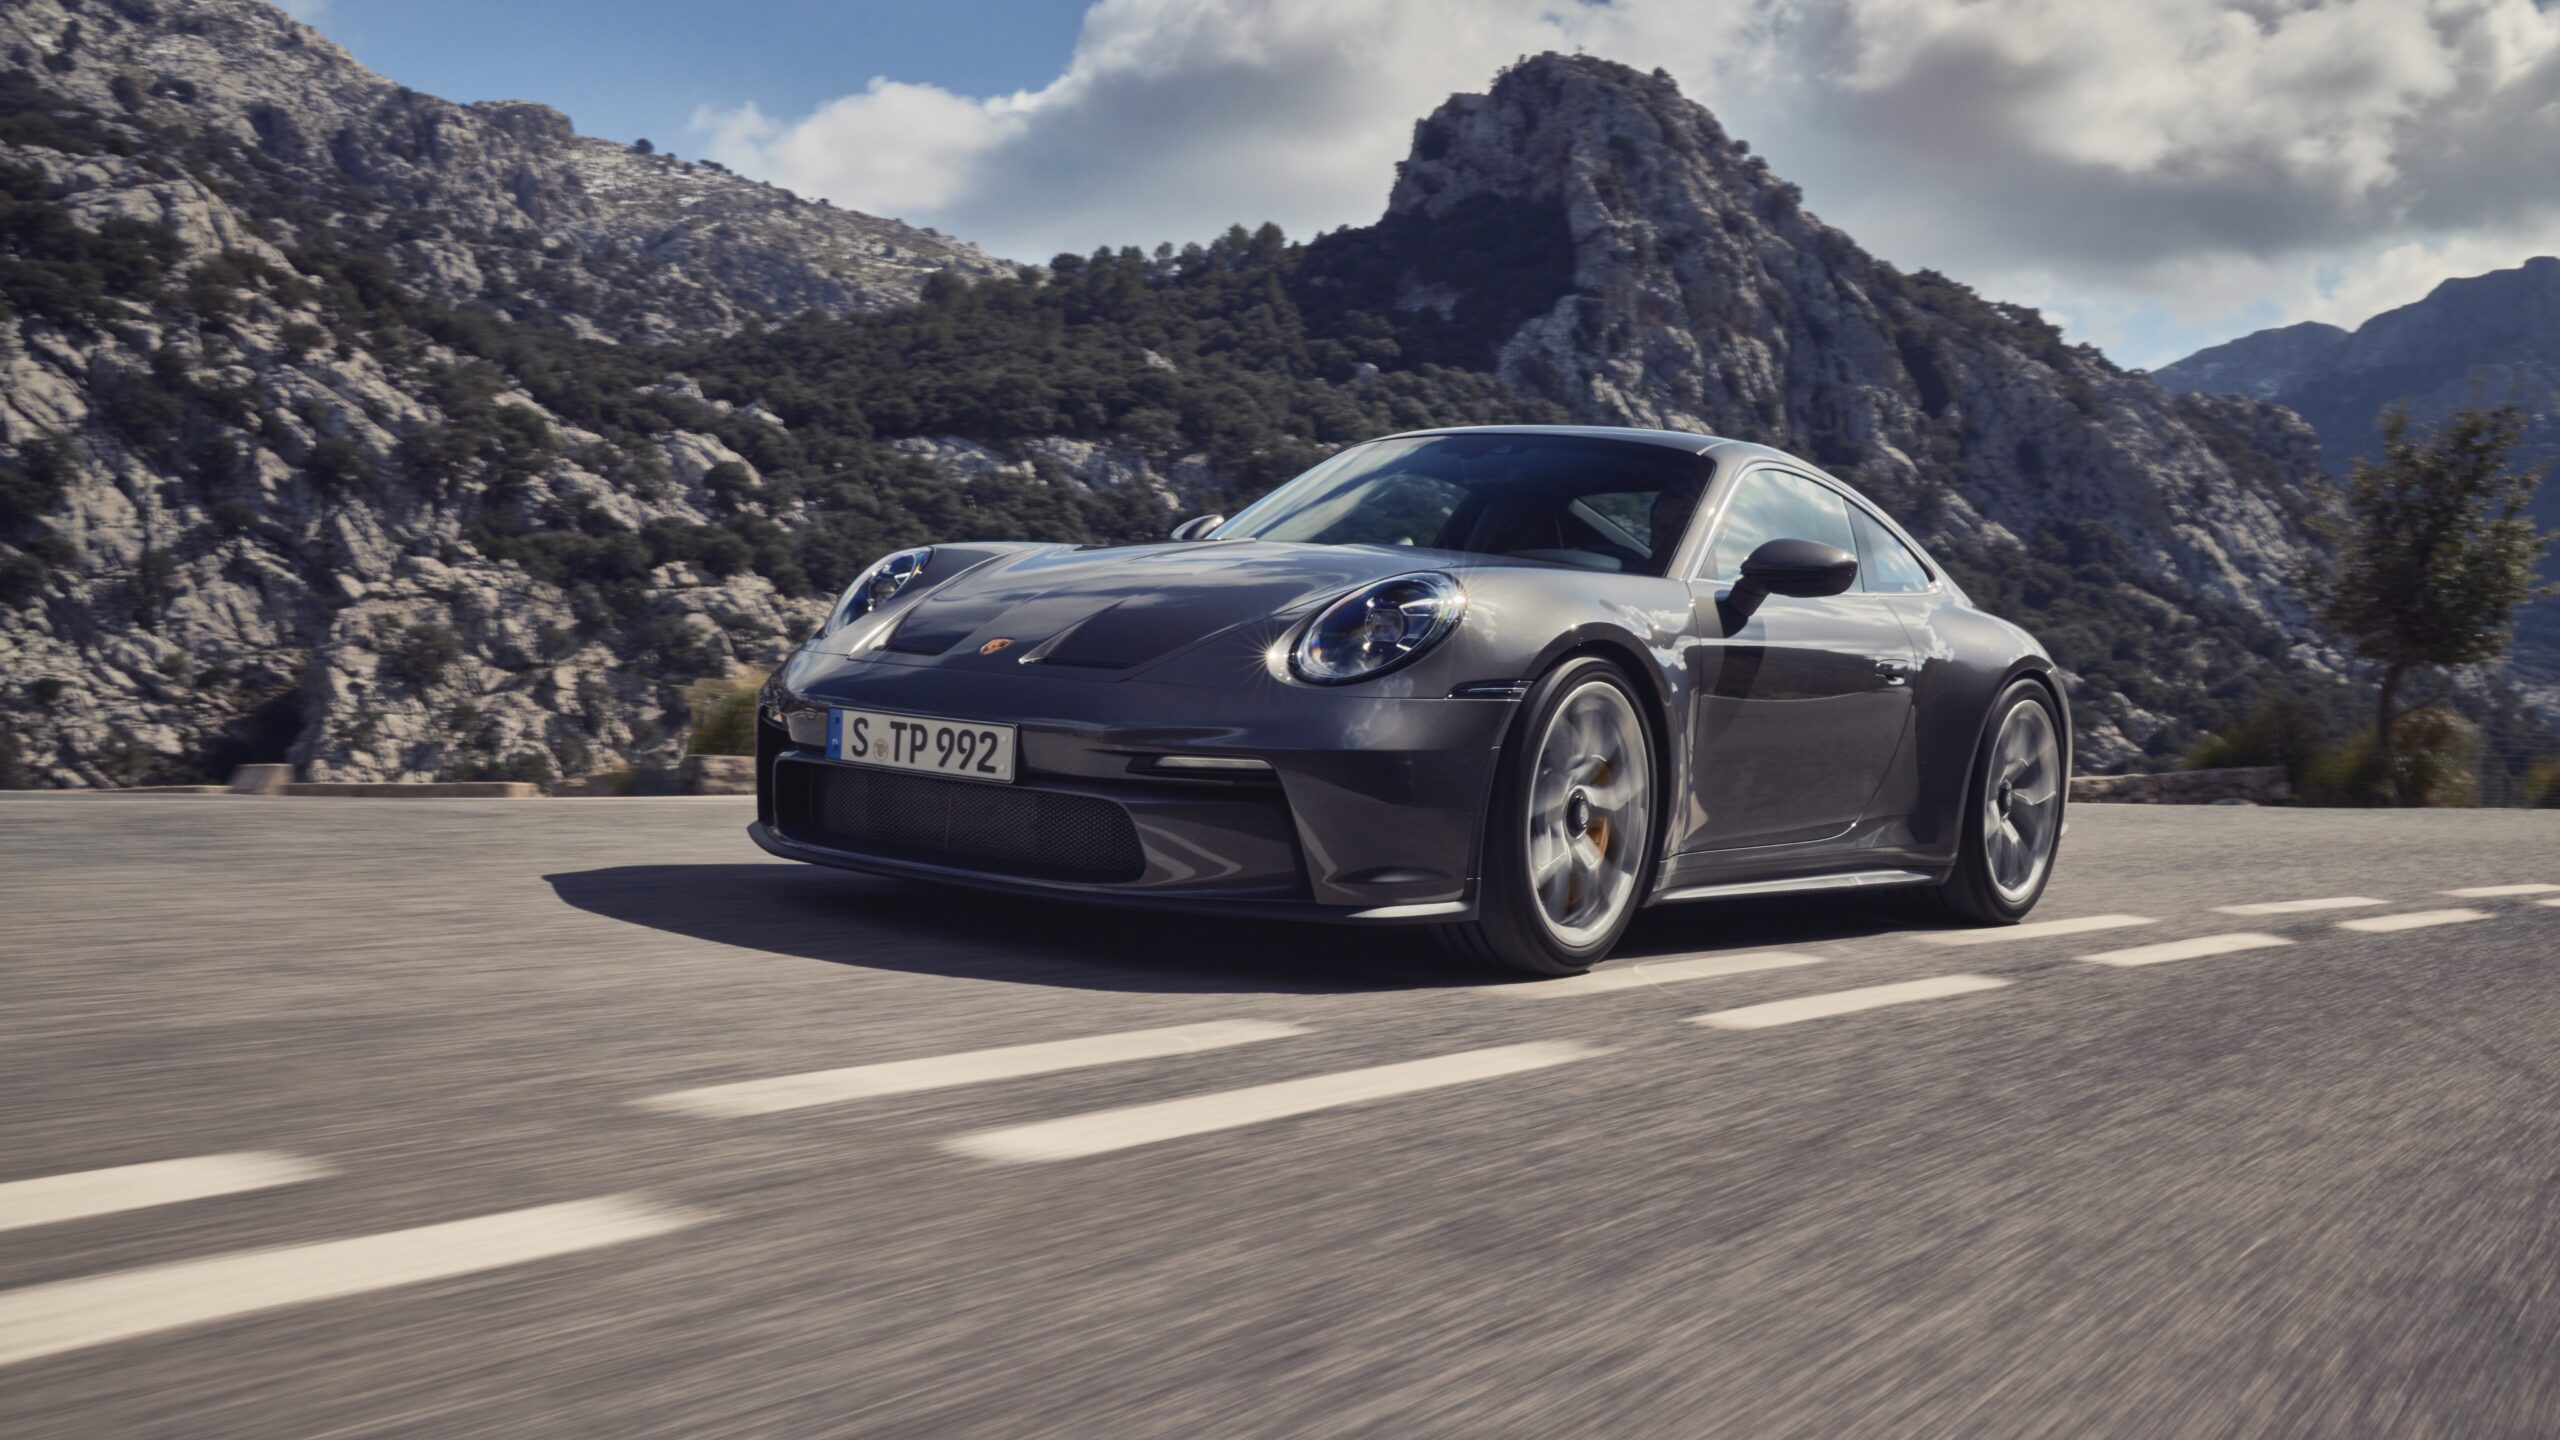 2021 Porsche 911 GT3 Touring Driving In The Mountains